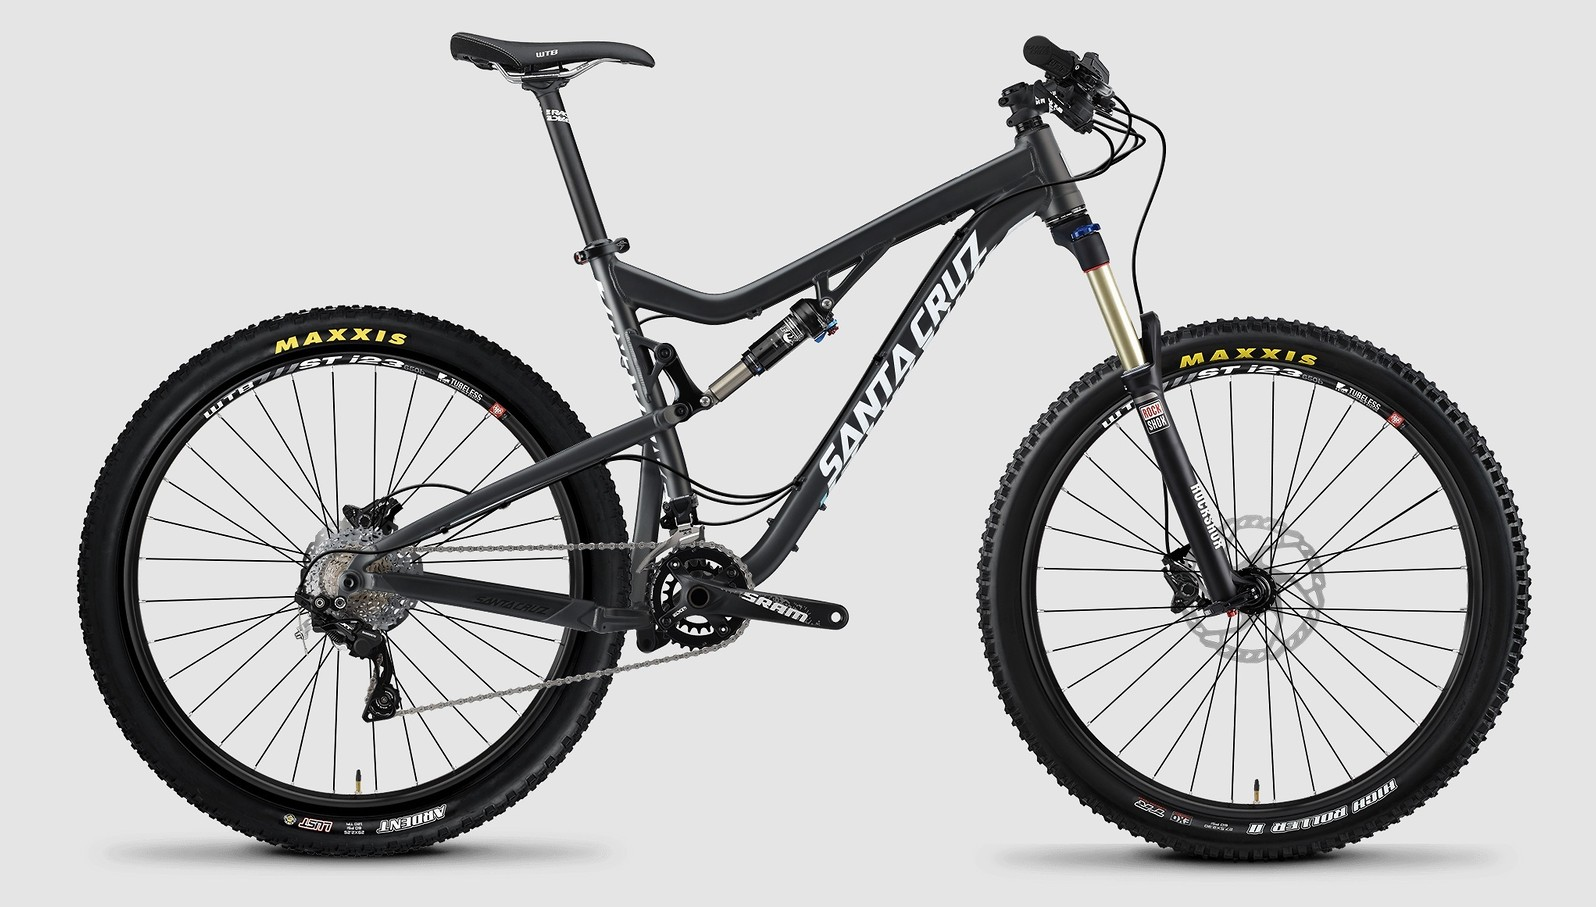 2015 Santa Cruz 5010 Aluminum R - Reviews, Comparisons, Specs ...